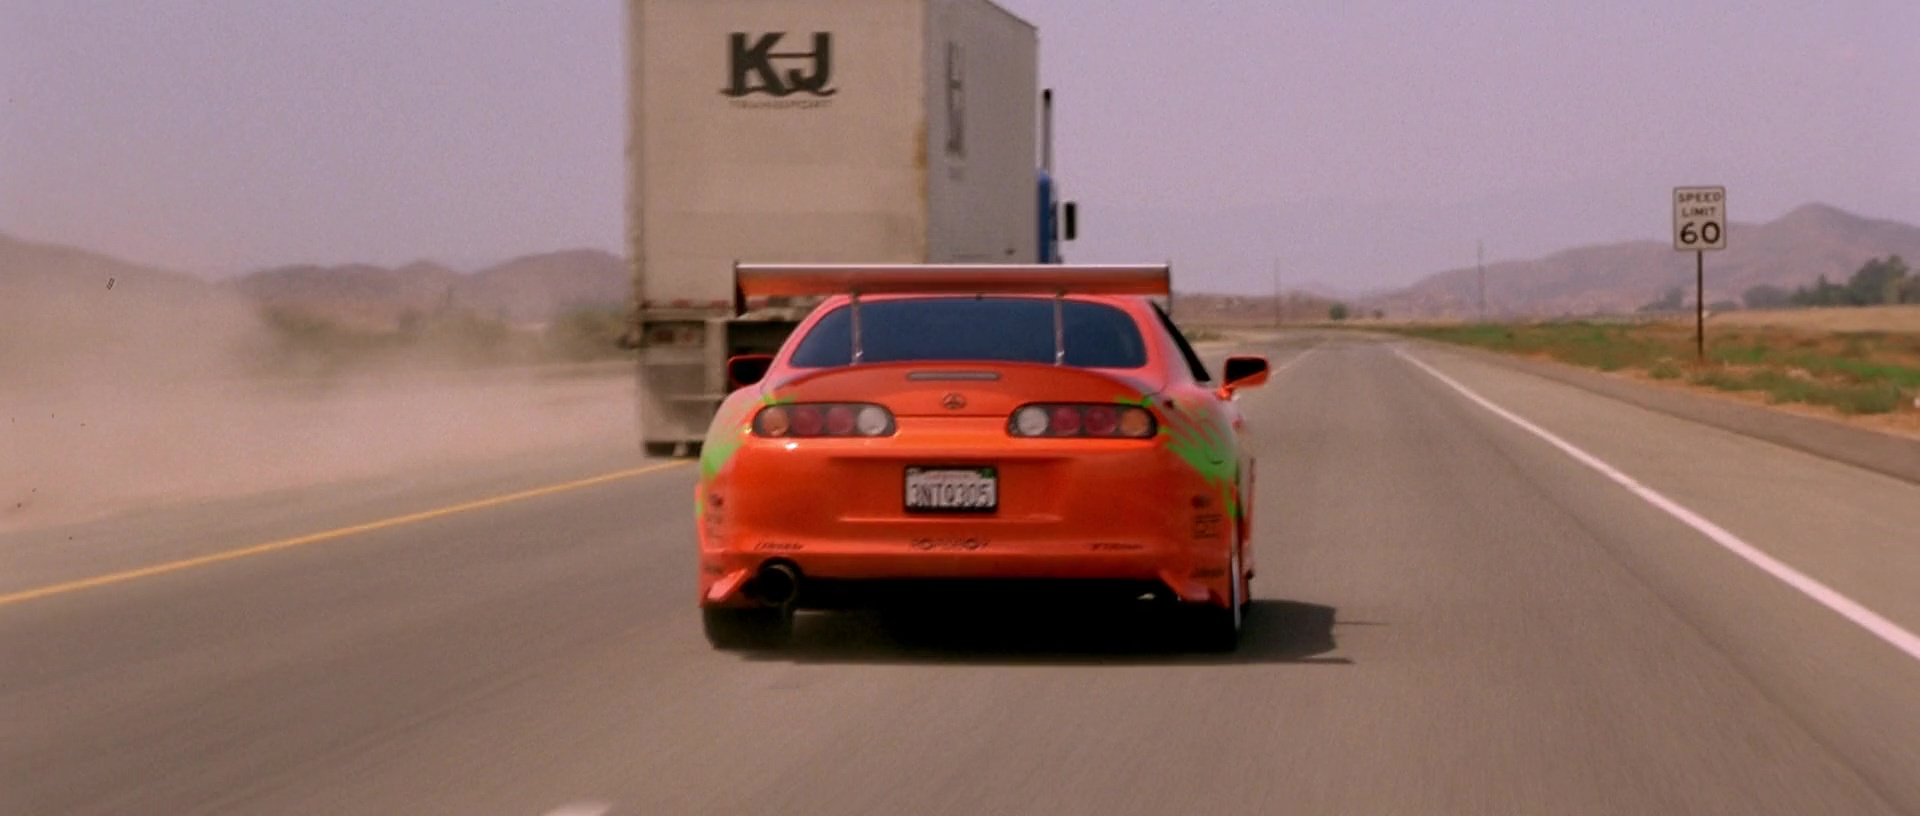 Image Toyota Supra Highway Rear View Jpg The Fast